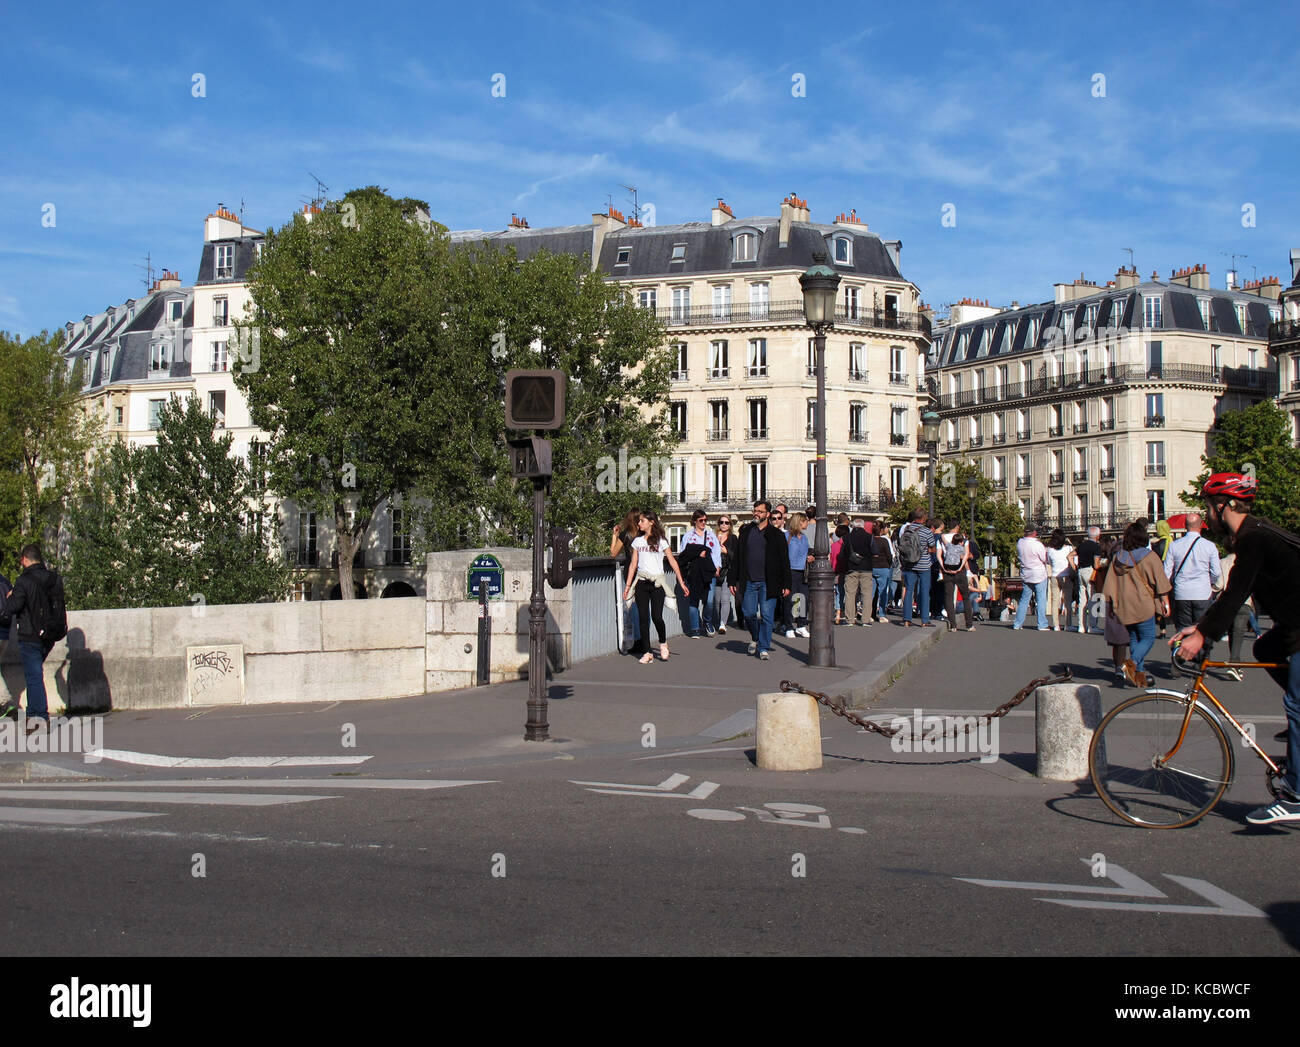 Pont Saint-Louis, bridge, Seine river, Paris, France - Stock Image